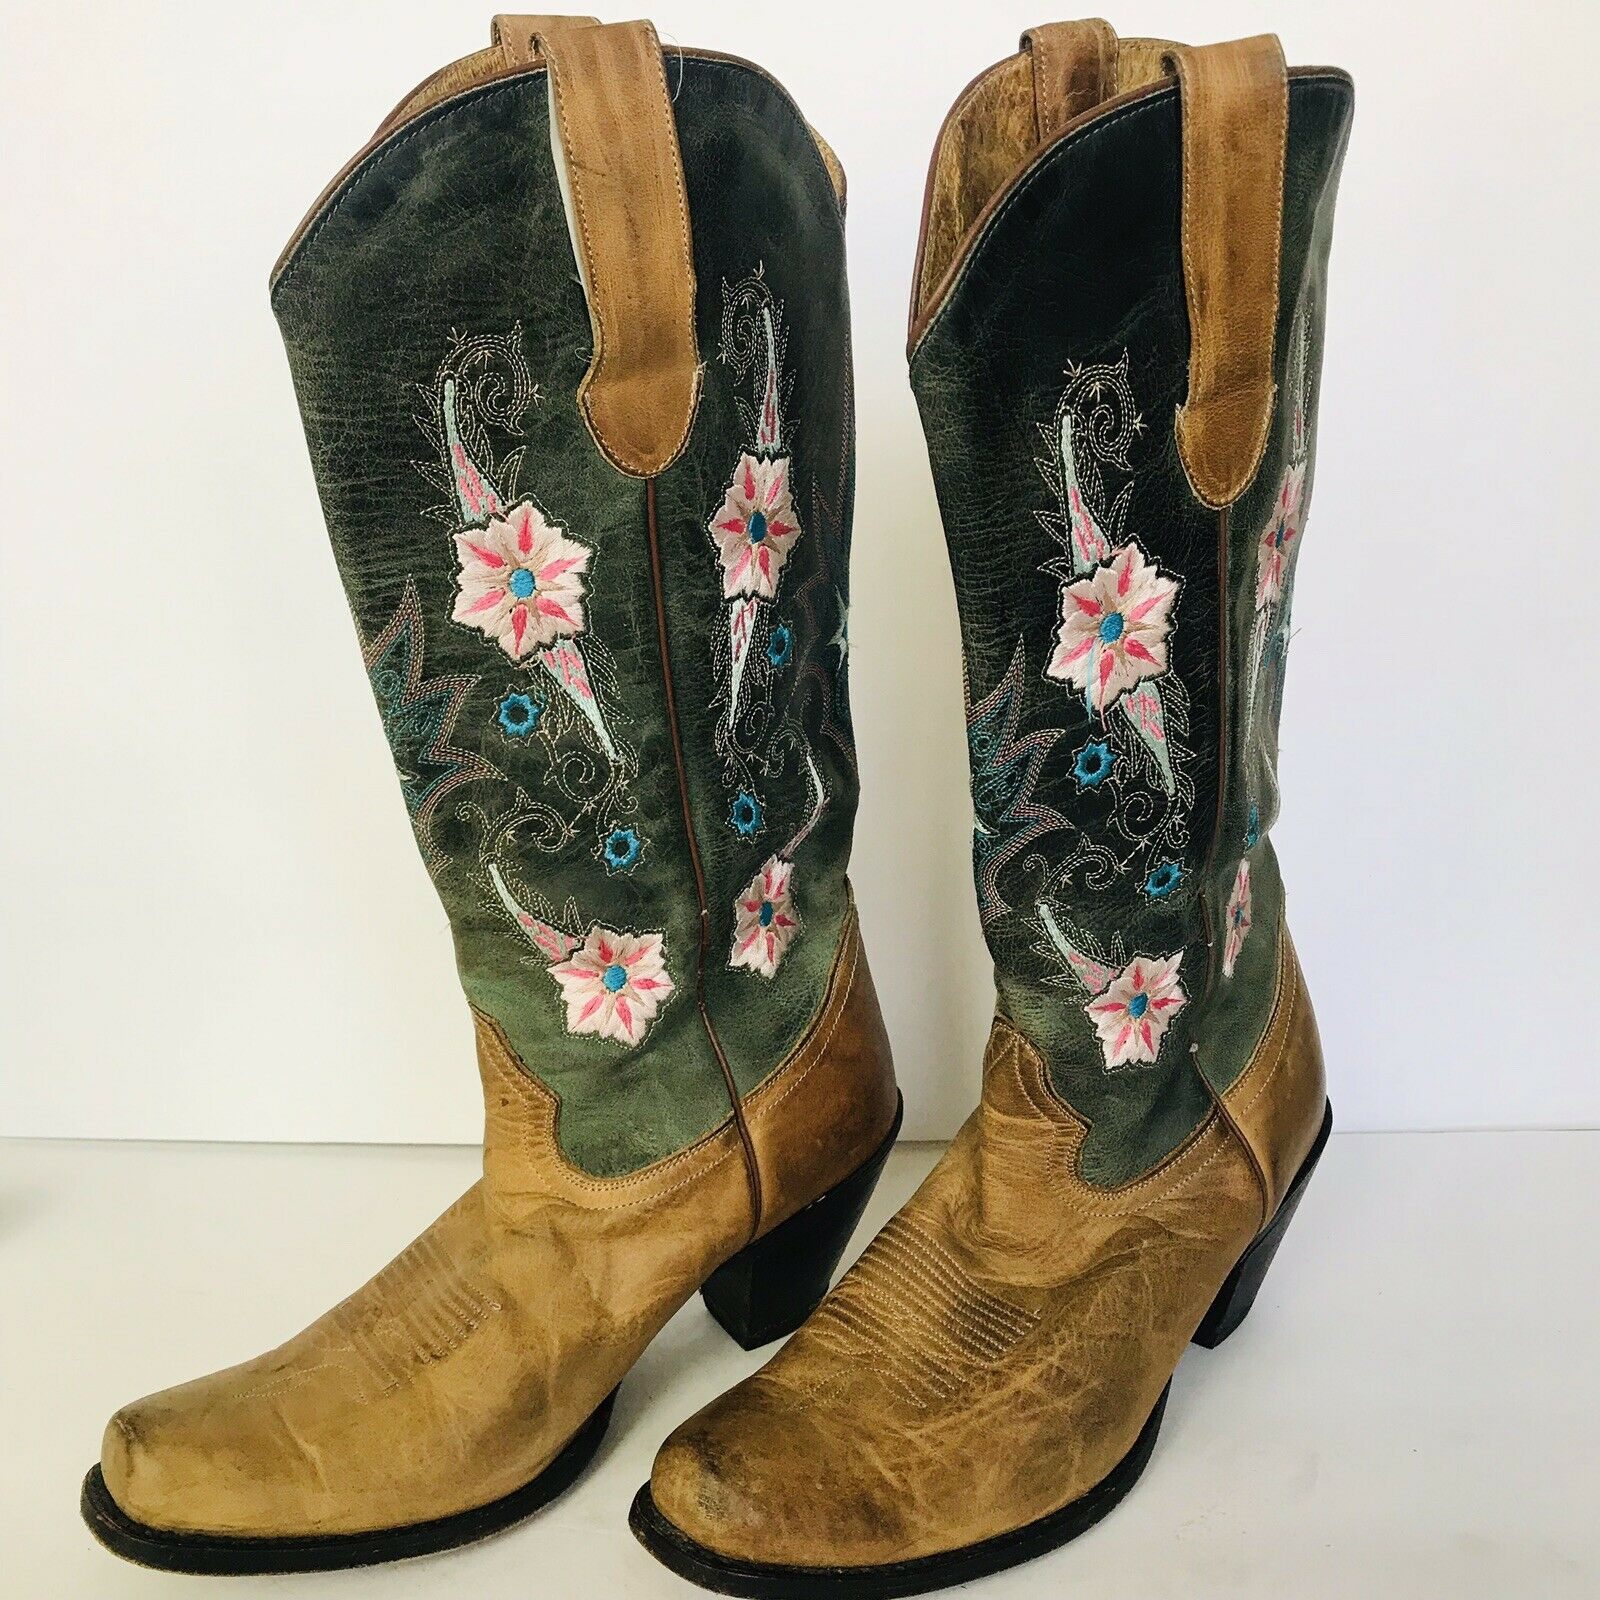 SONORA  BROWN LEATHER EMBROIDERED FLORAL COWBOY WESTERN BOOTS FESTIVAL WEAR  9